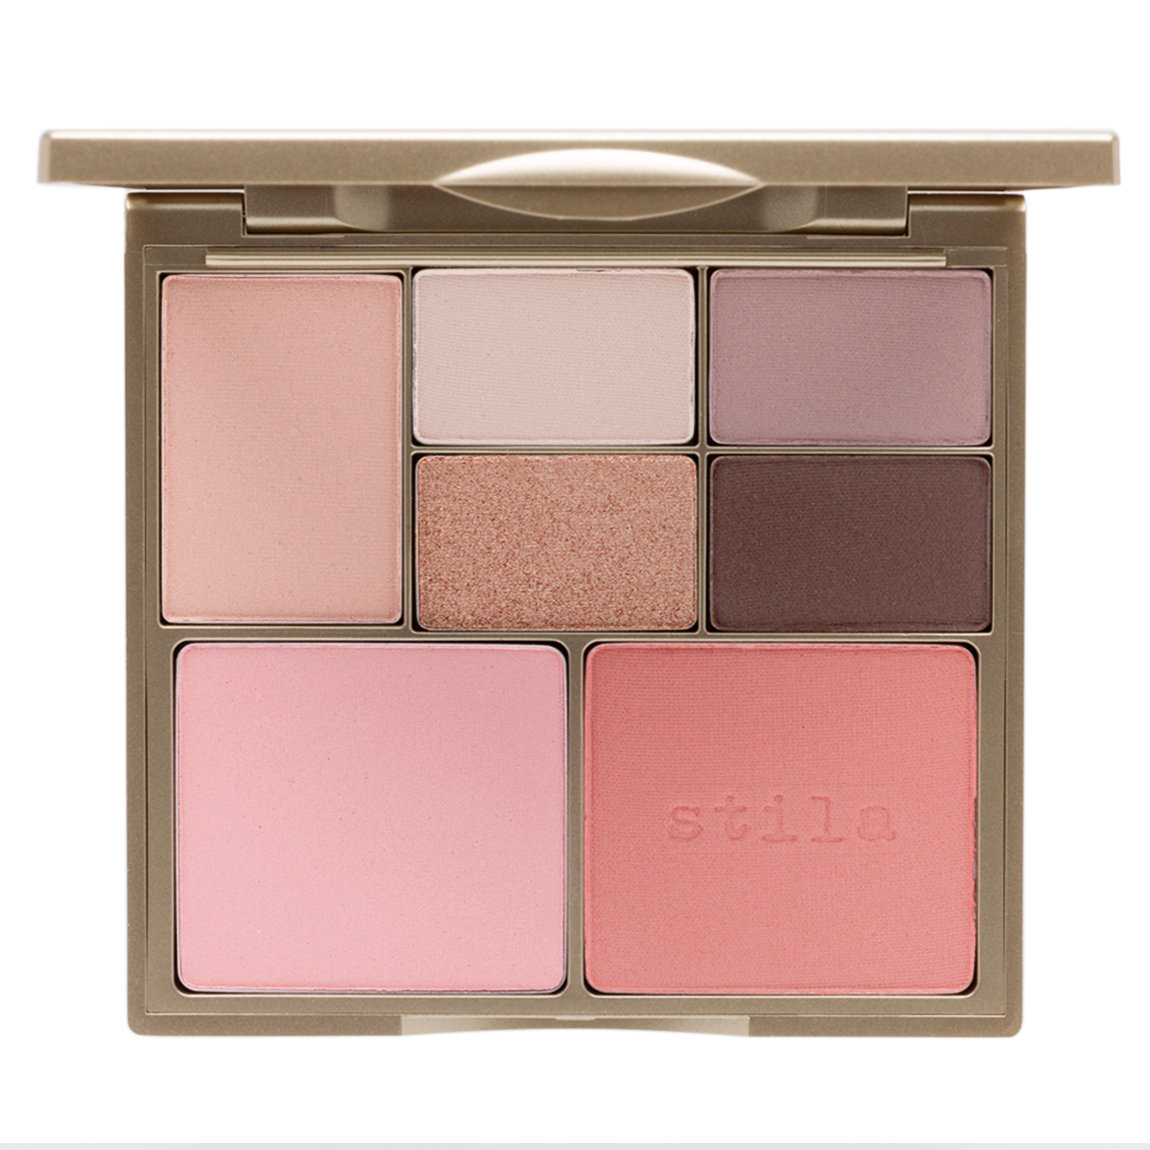 Stila Perfect Me, Perfect Hue Eye & Cheek Palette Fair/Light product smear.